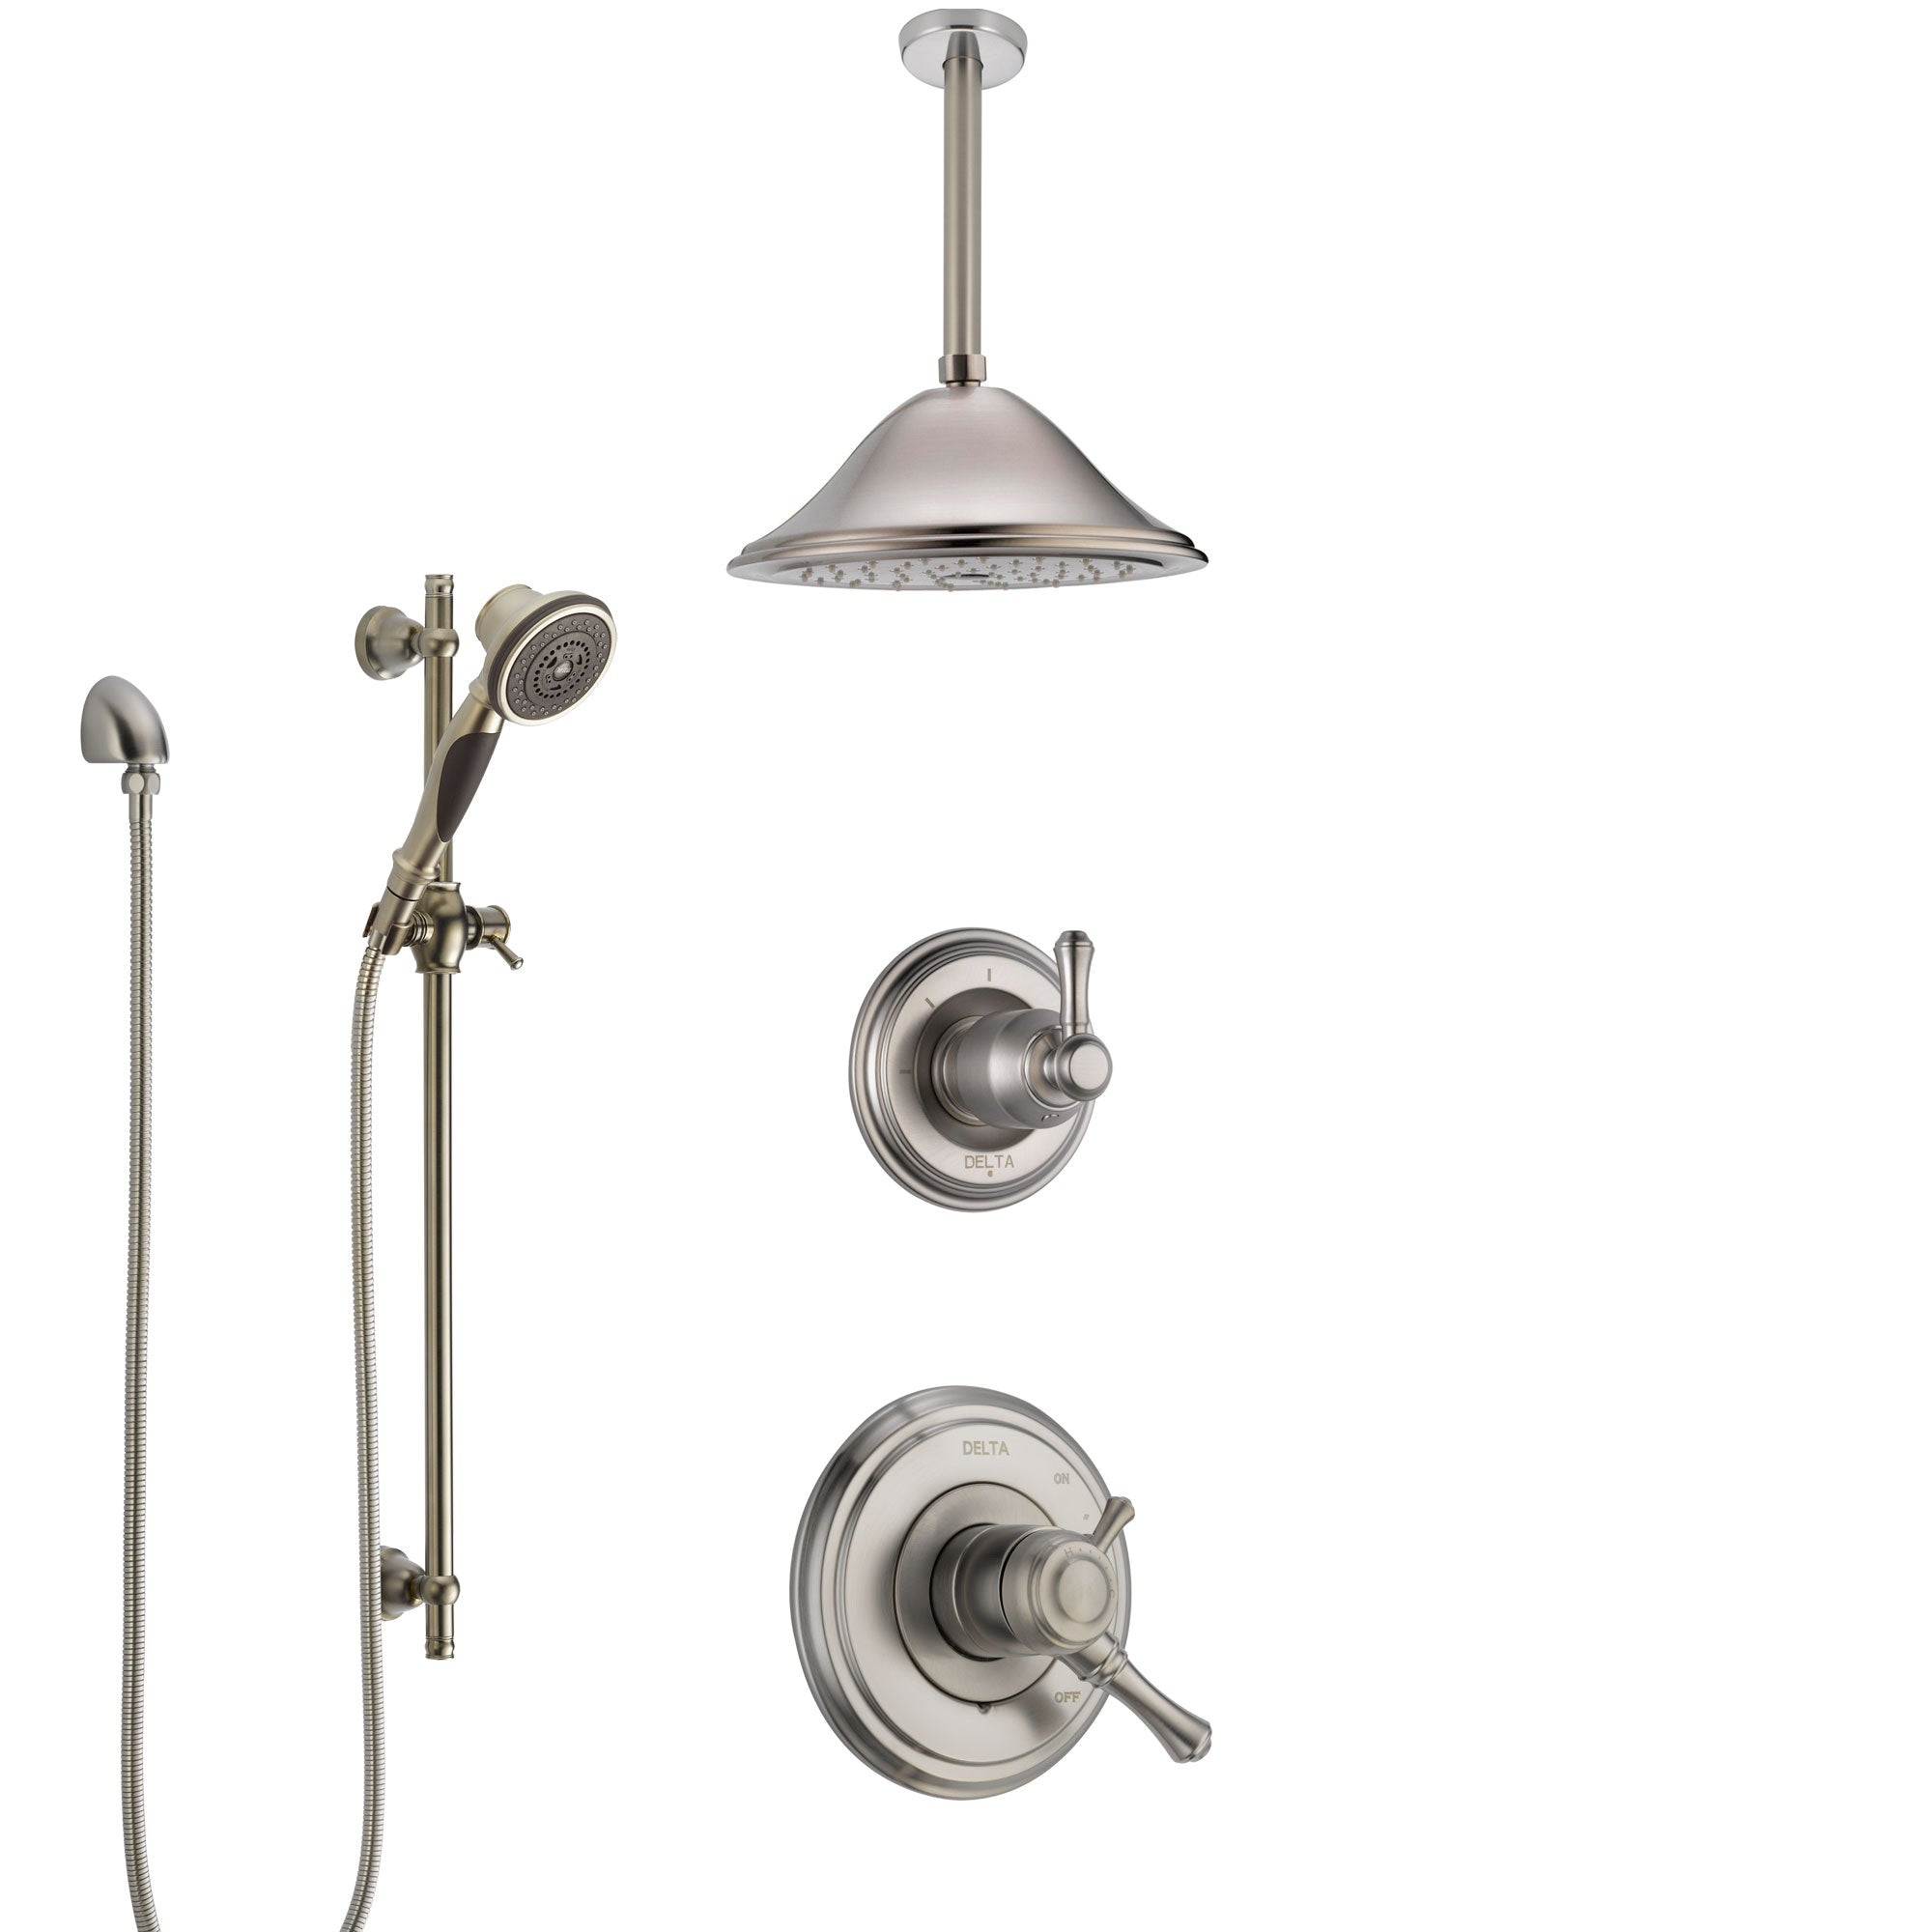 Delta Cassidy Dual Control Handle Stainless Steel Finish Shower System, Diverter, Ceiling Mount Showerhead, and Hand Shower with Slidebar SS1797SS3